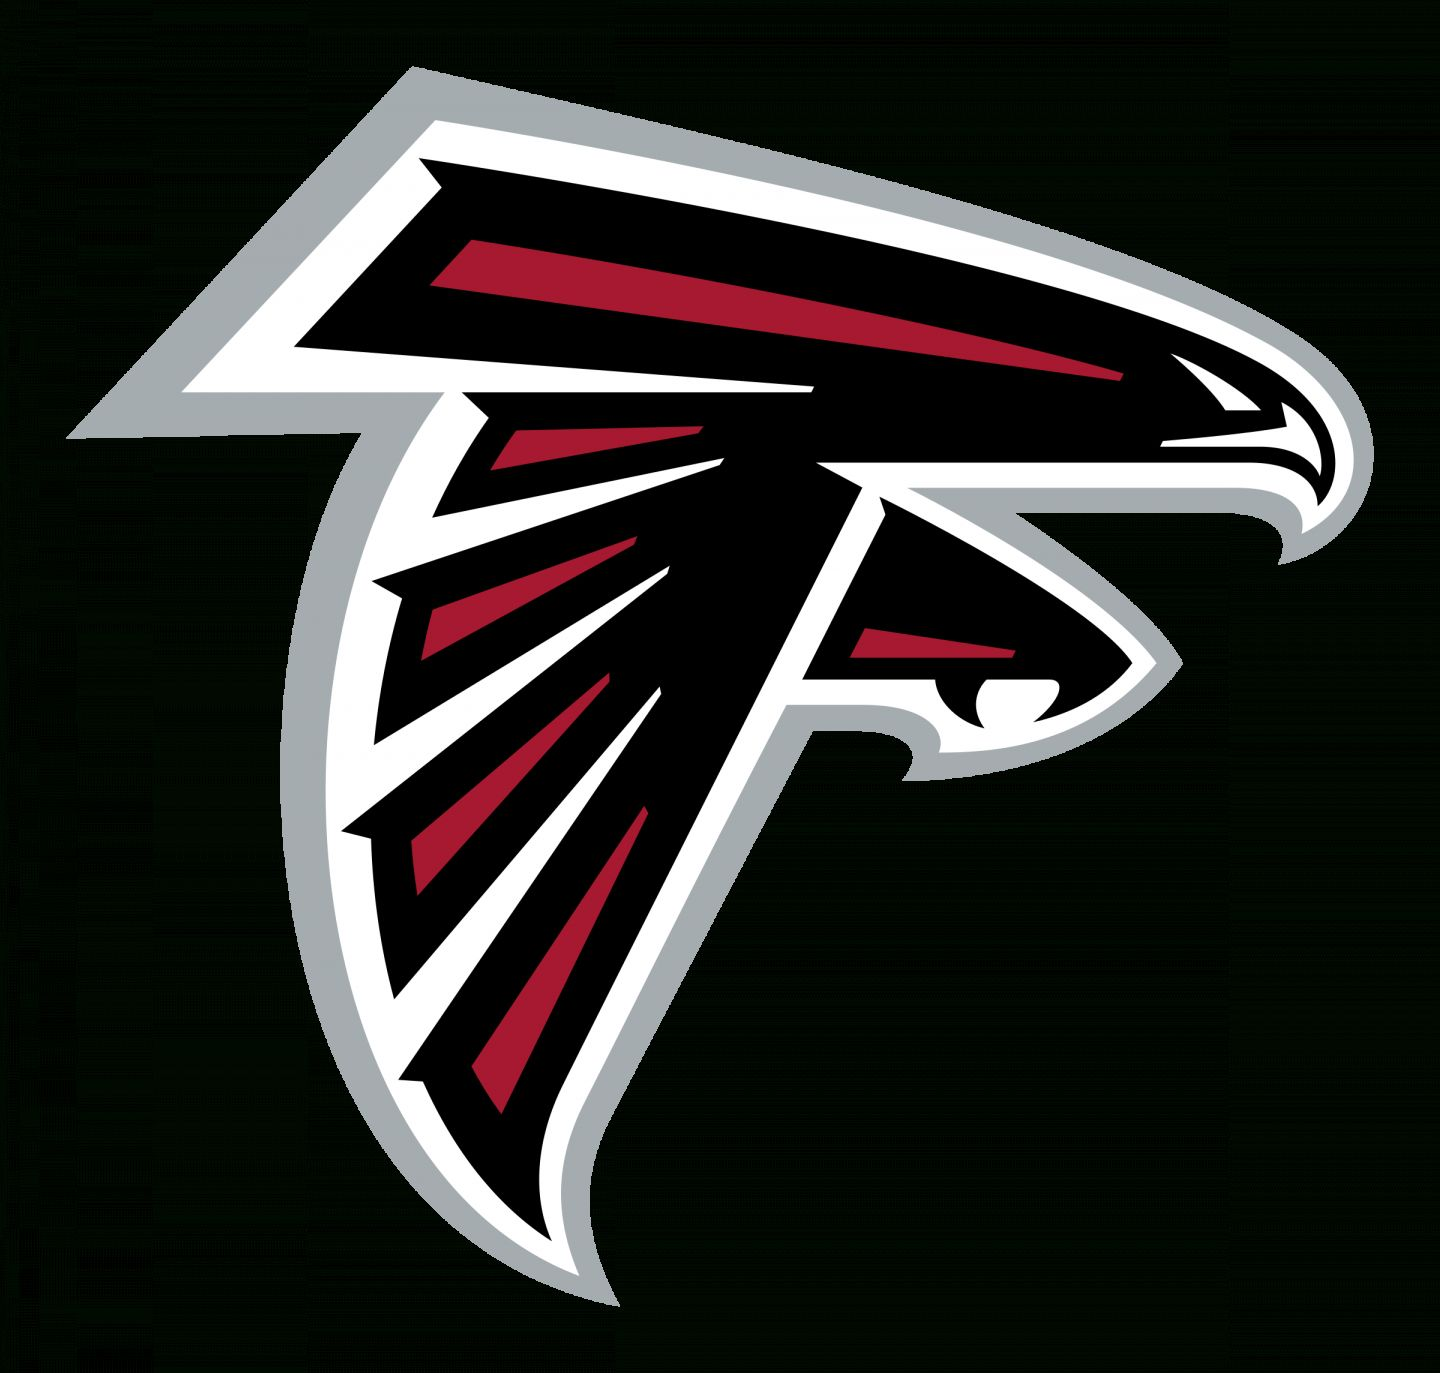 17 Atlanta Falcons Vector Logo In 2020 Atlanta Falcons Logo Falcon Logo Atlanta Falcons